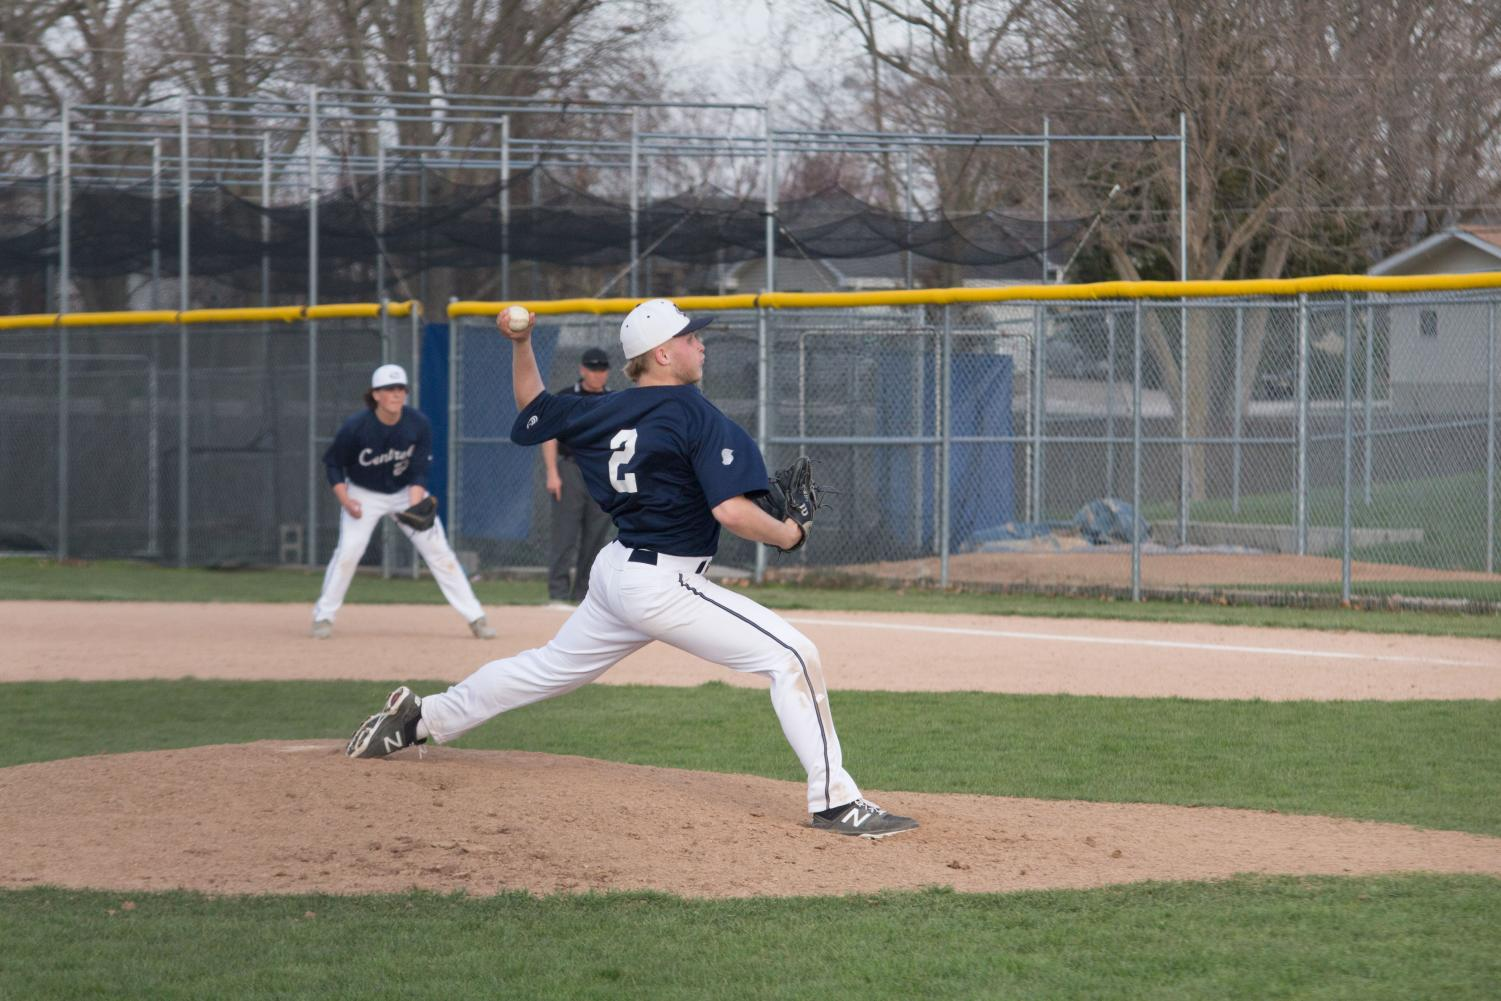 Tim Ewald throws a pitch during a game against Fort Zumwalt West. In the recent game against Lafayette on April 24th.